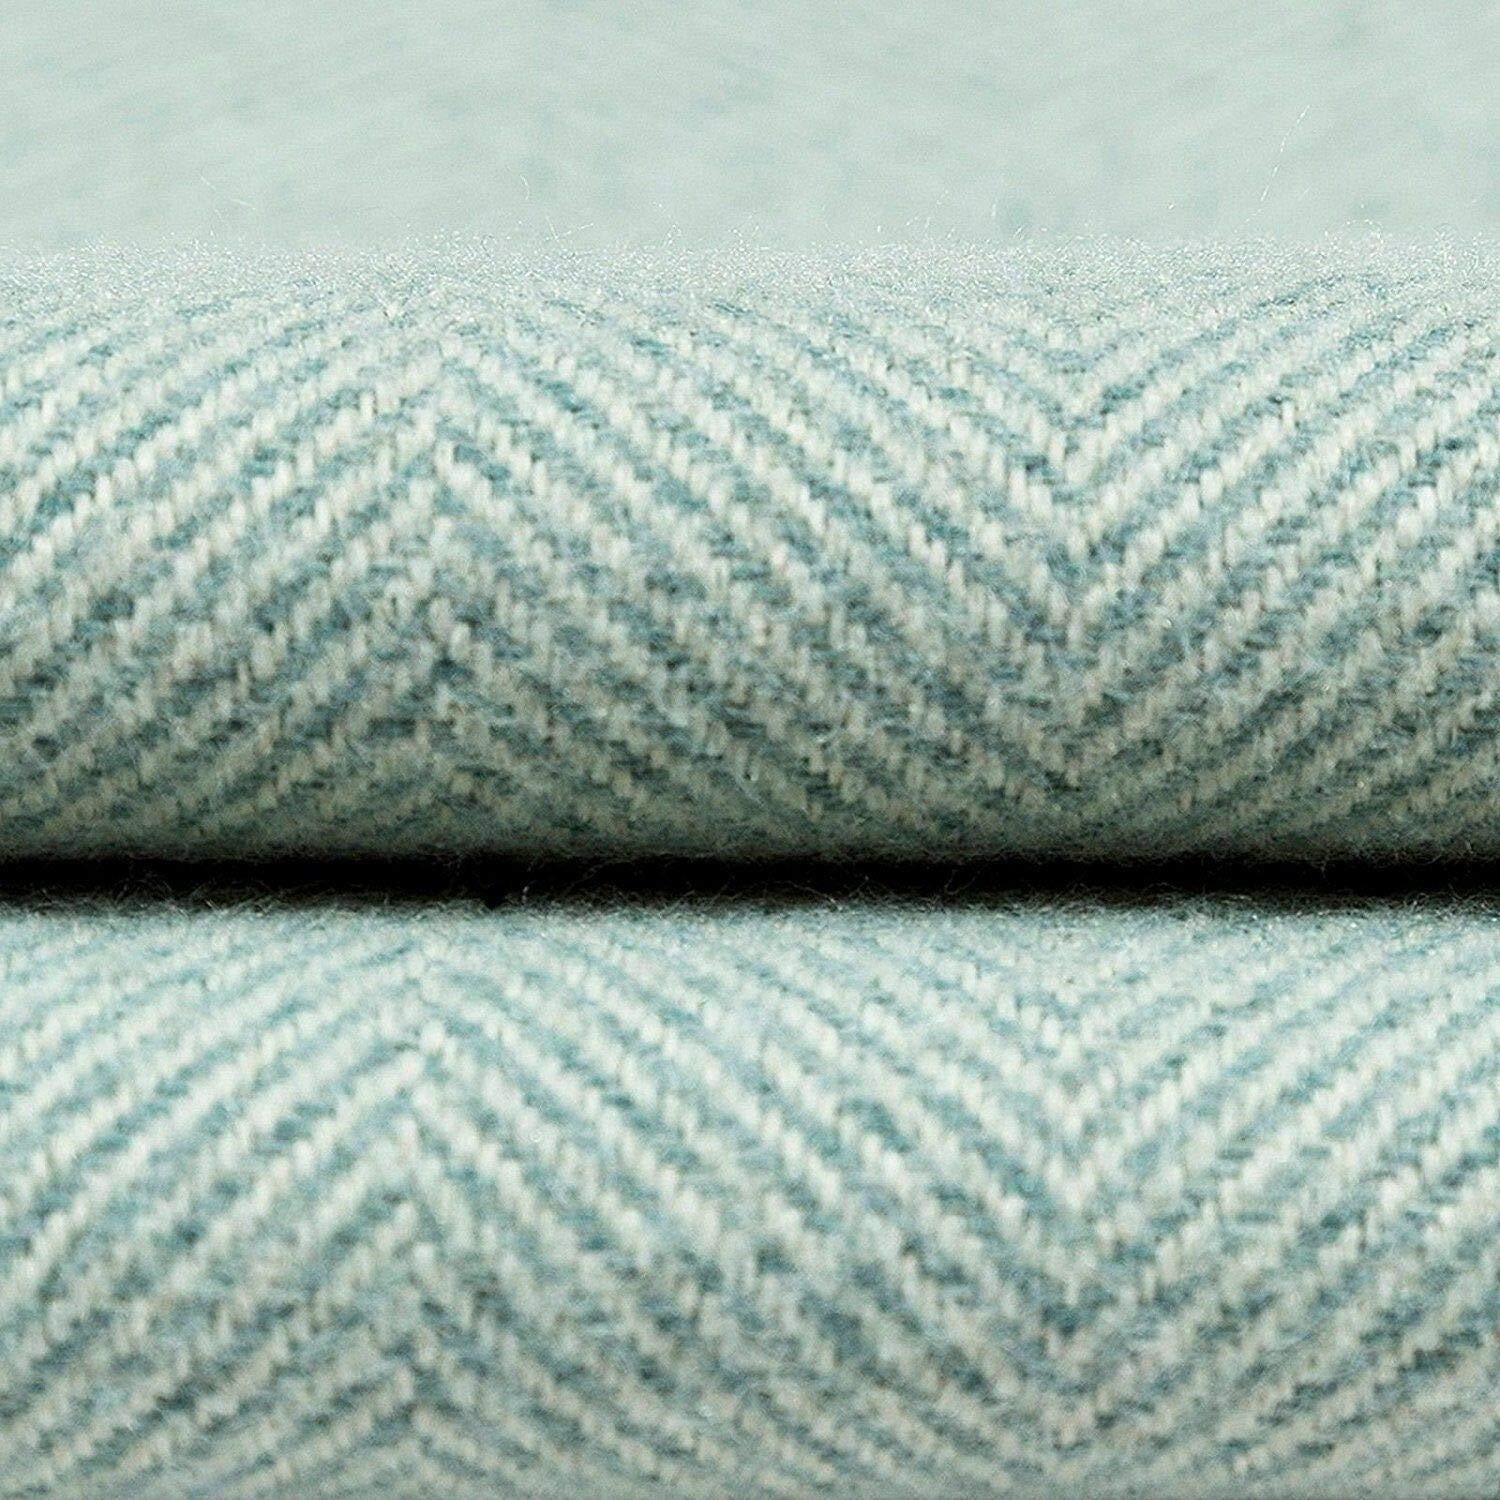 McAlister Textiles Deluxe Herringbone Duck Egg Blue Bolster Pillow 45cm x 20cm Bolster Cushion